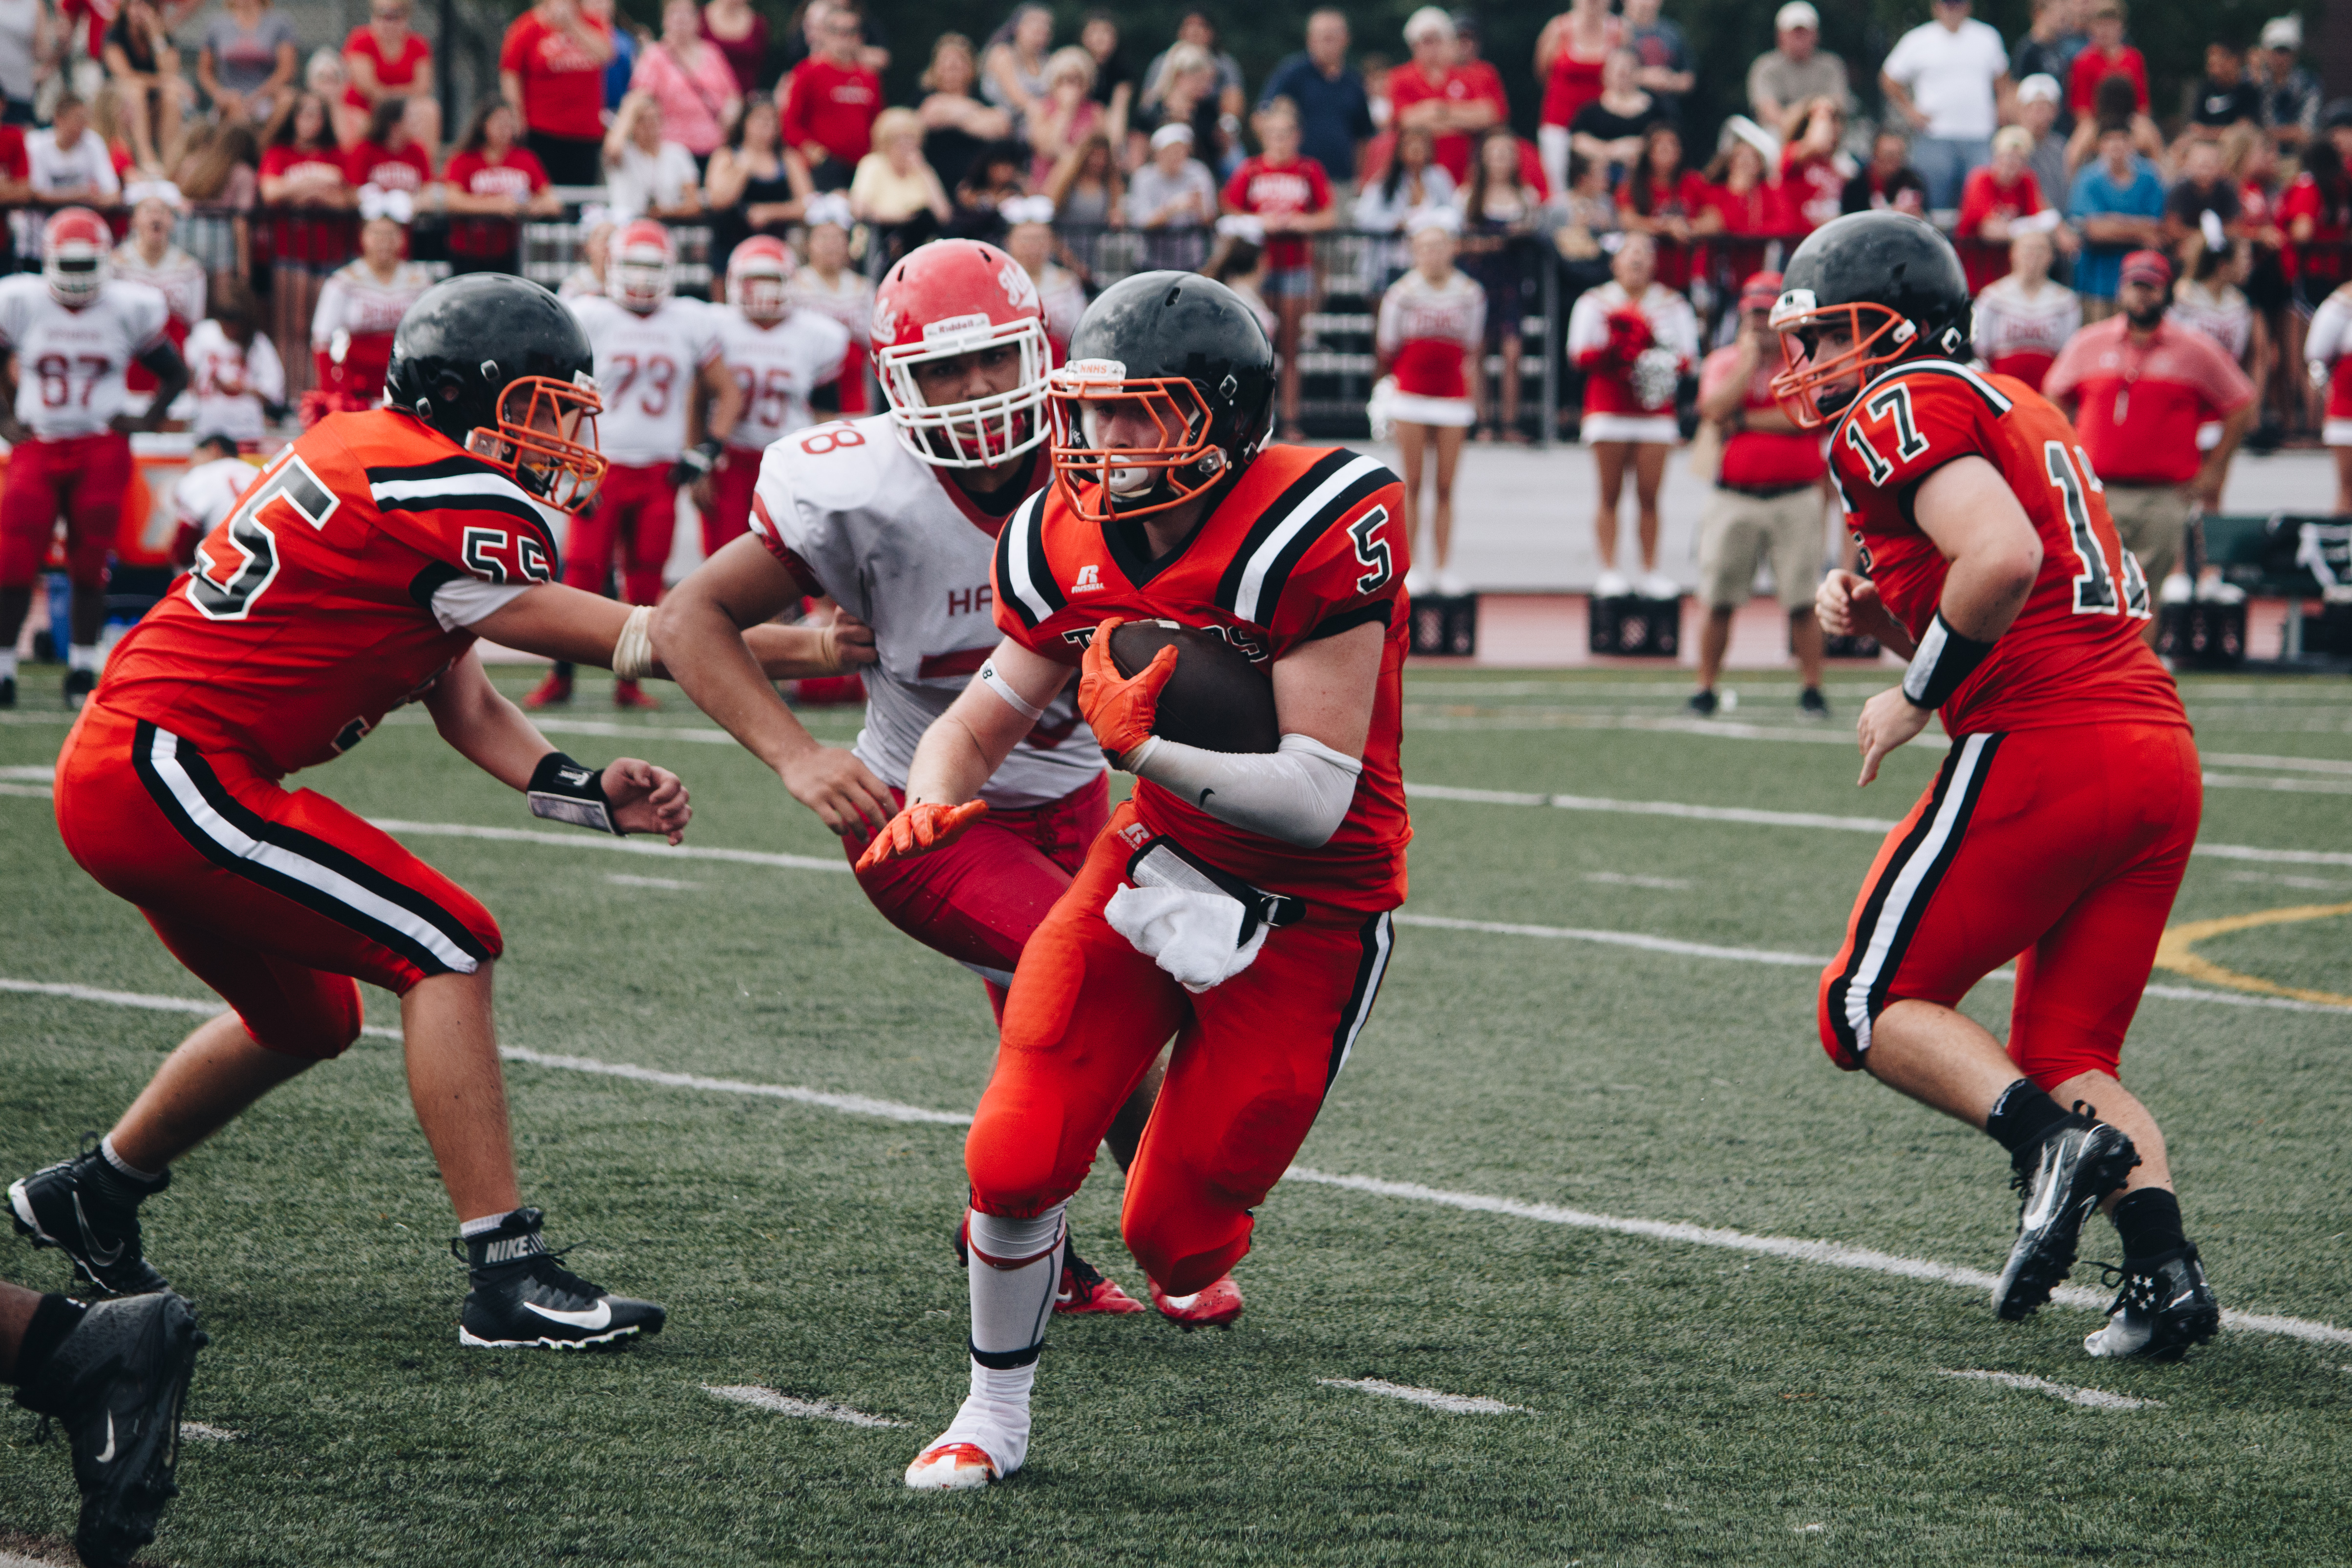 Senior Jimmy Hodgson rushes the ball in a 9-7 victory against Waltham last Saturday, September 10.